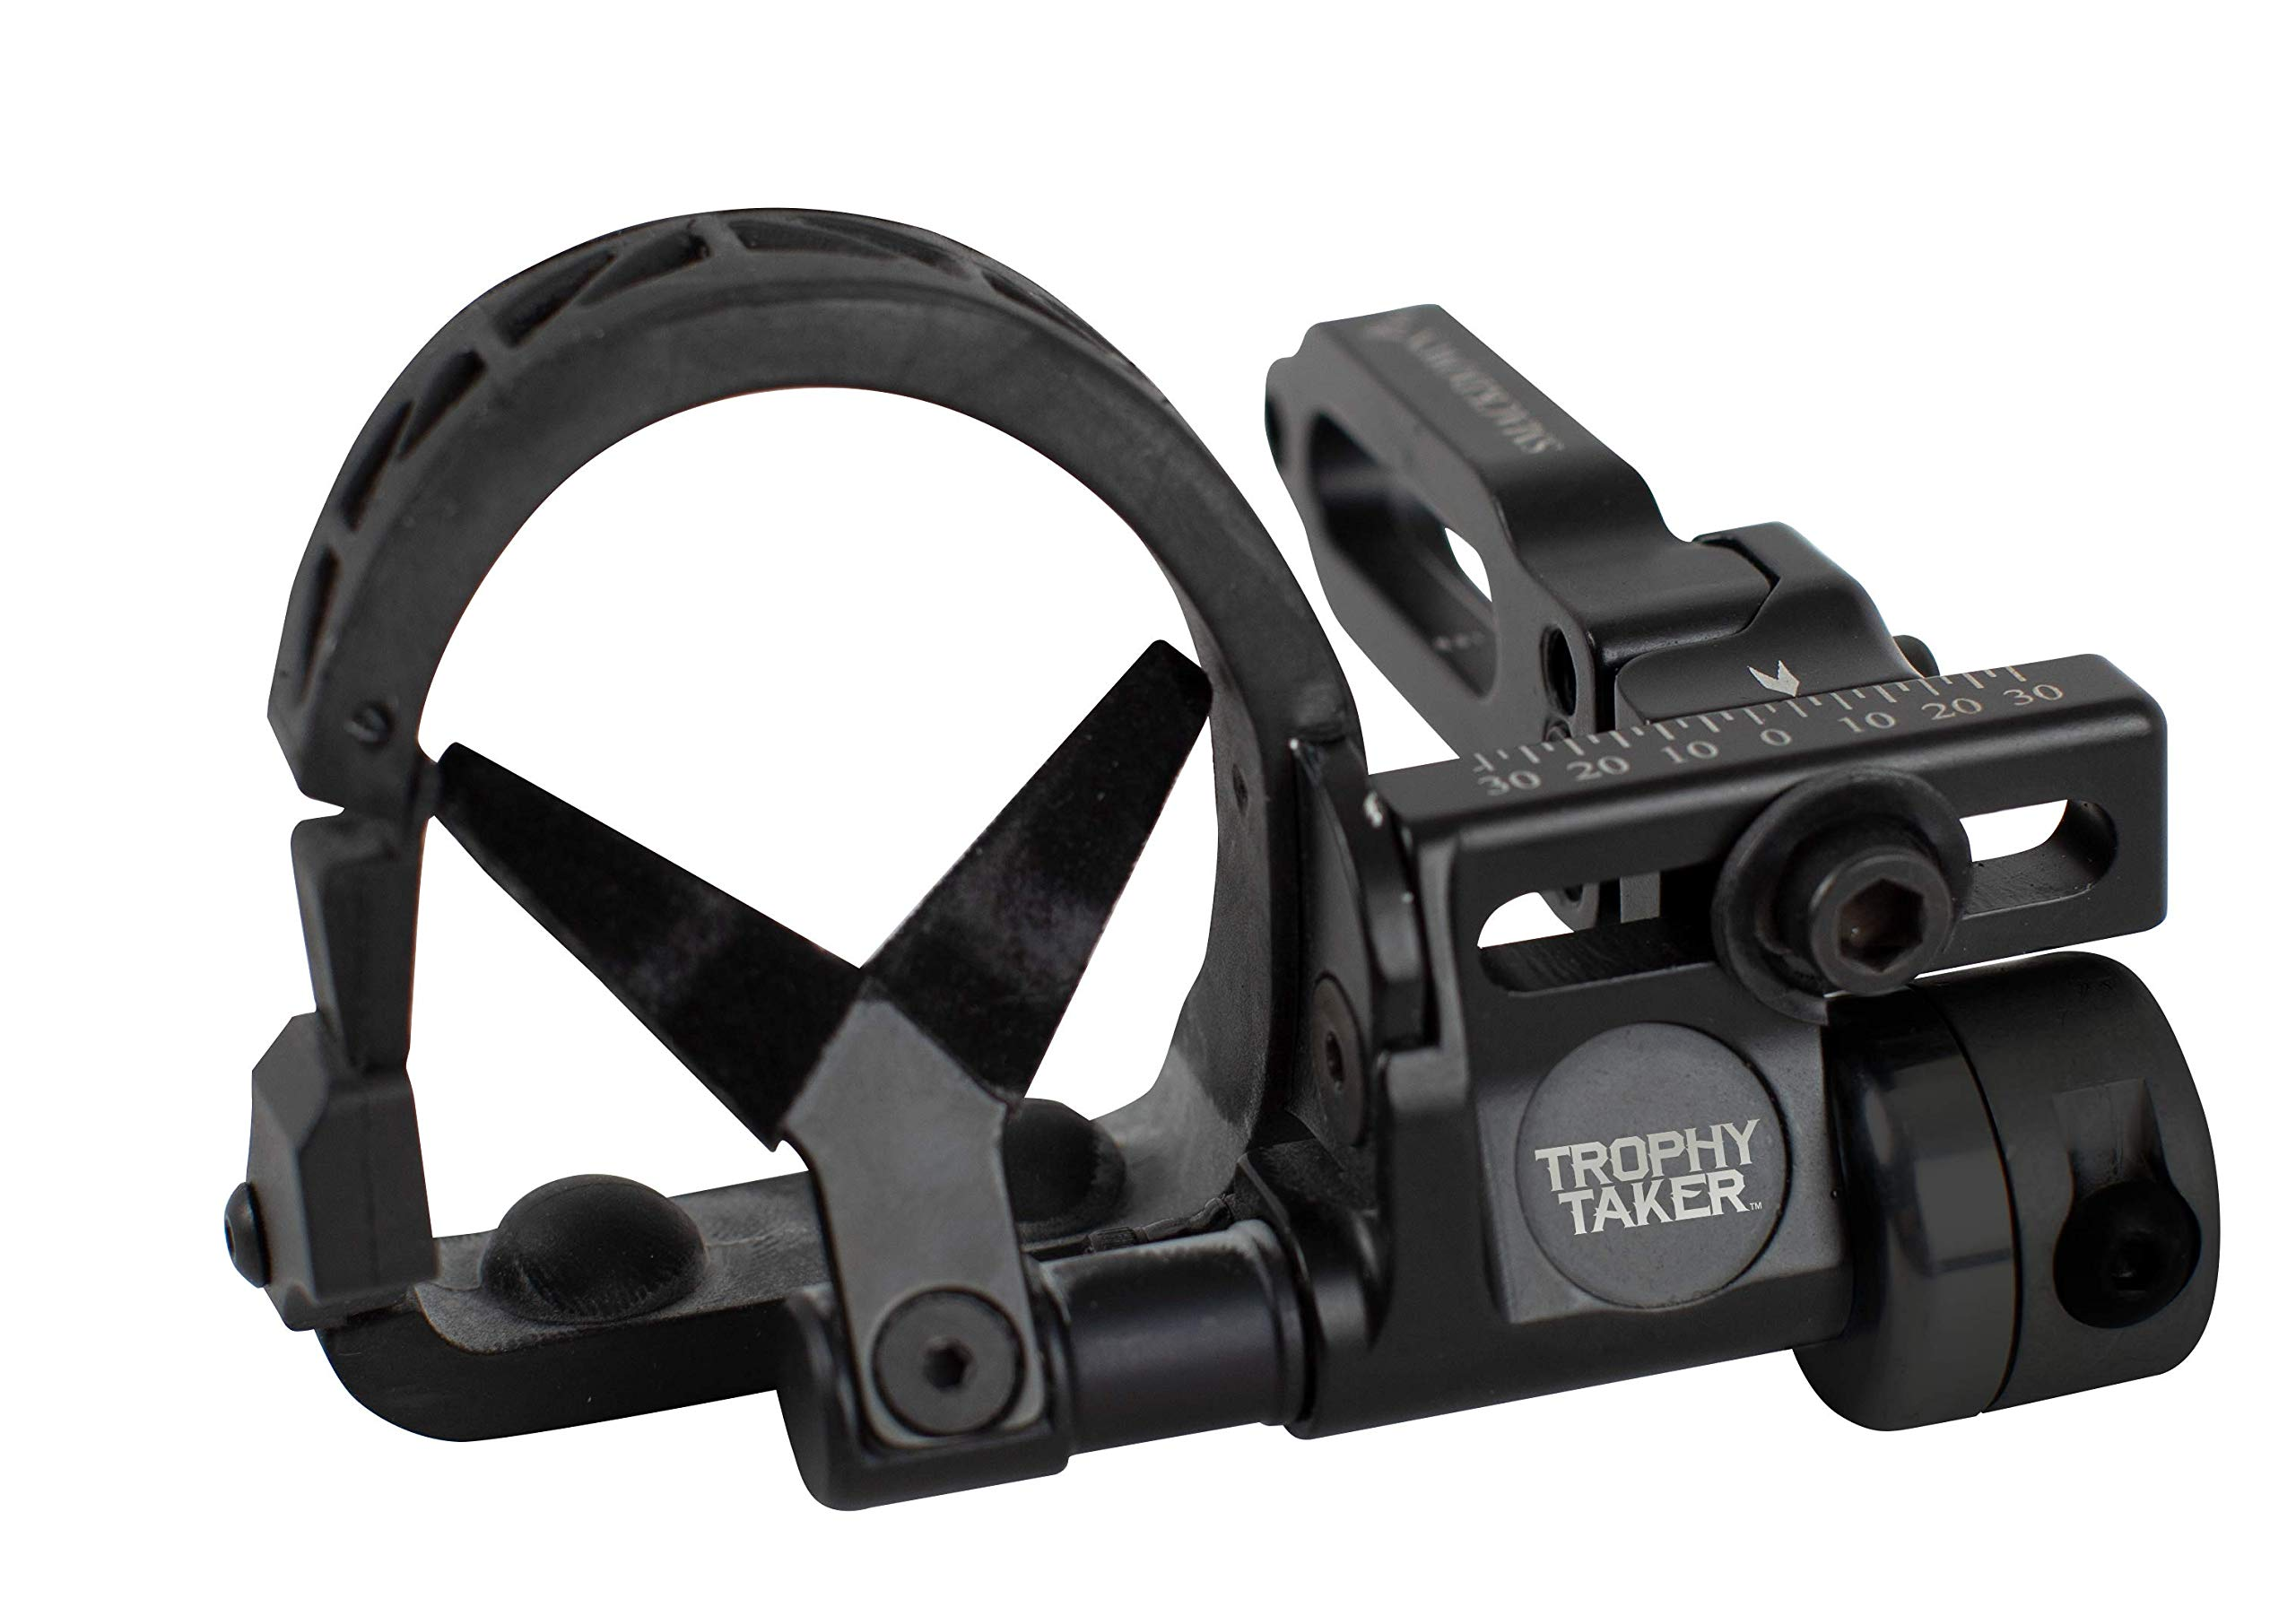 Trophy Taker Smackdown Lockup Arrow Rest - Right Hand - Compound Bow Hunting Archery Accessory by Trophy Taker